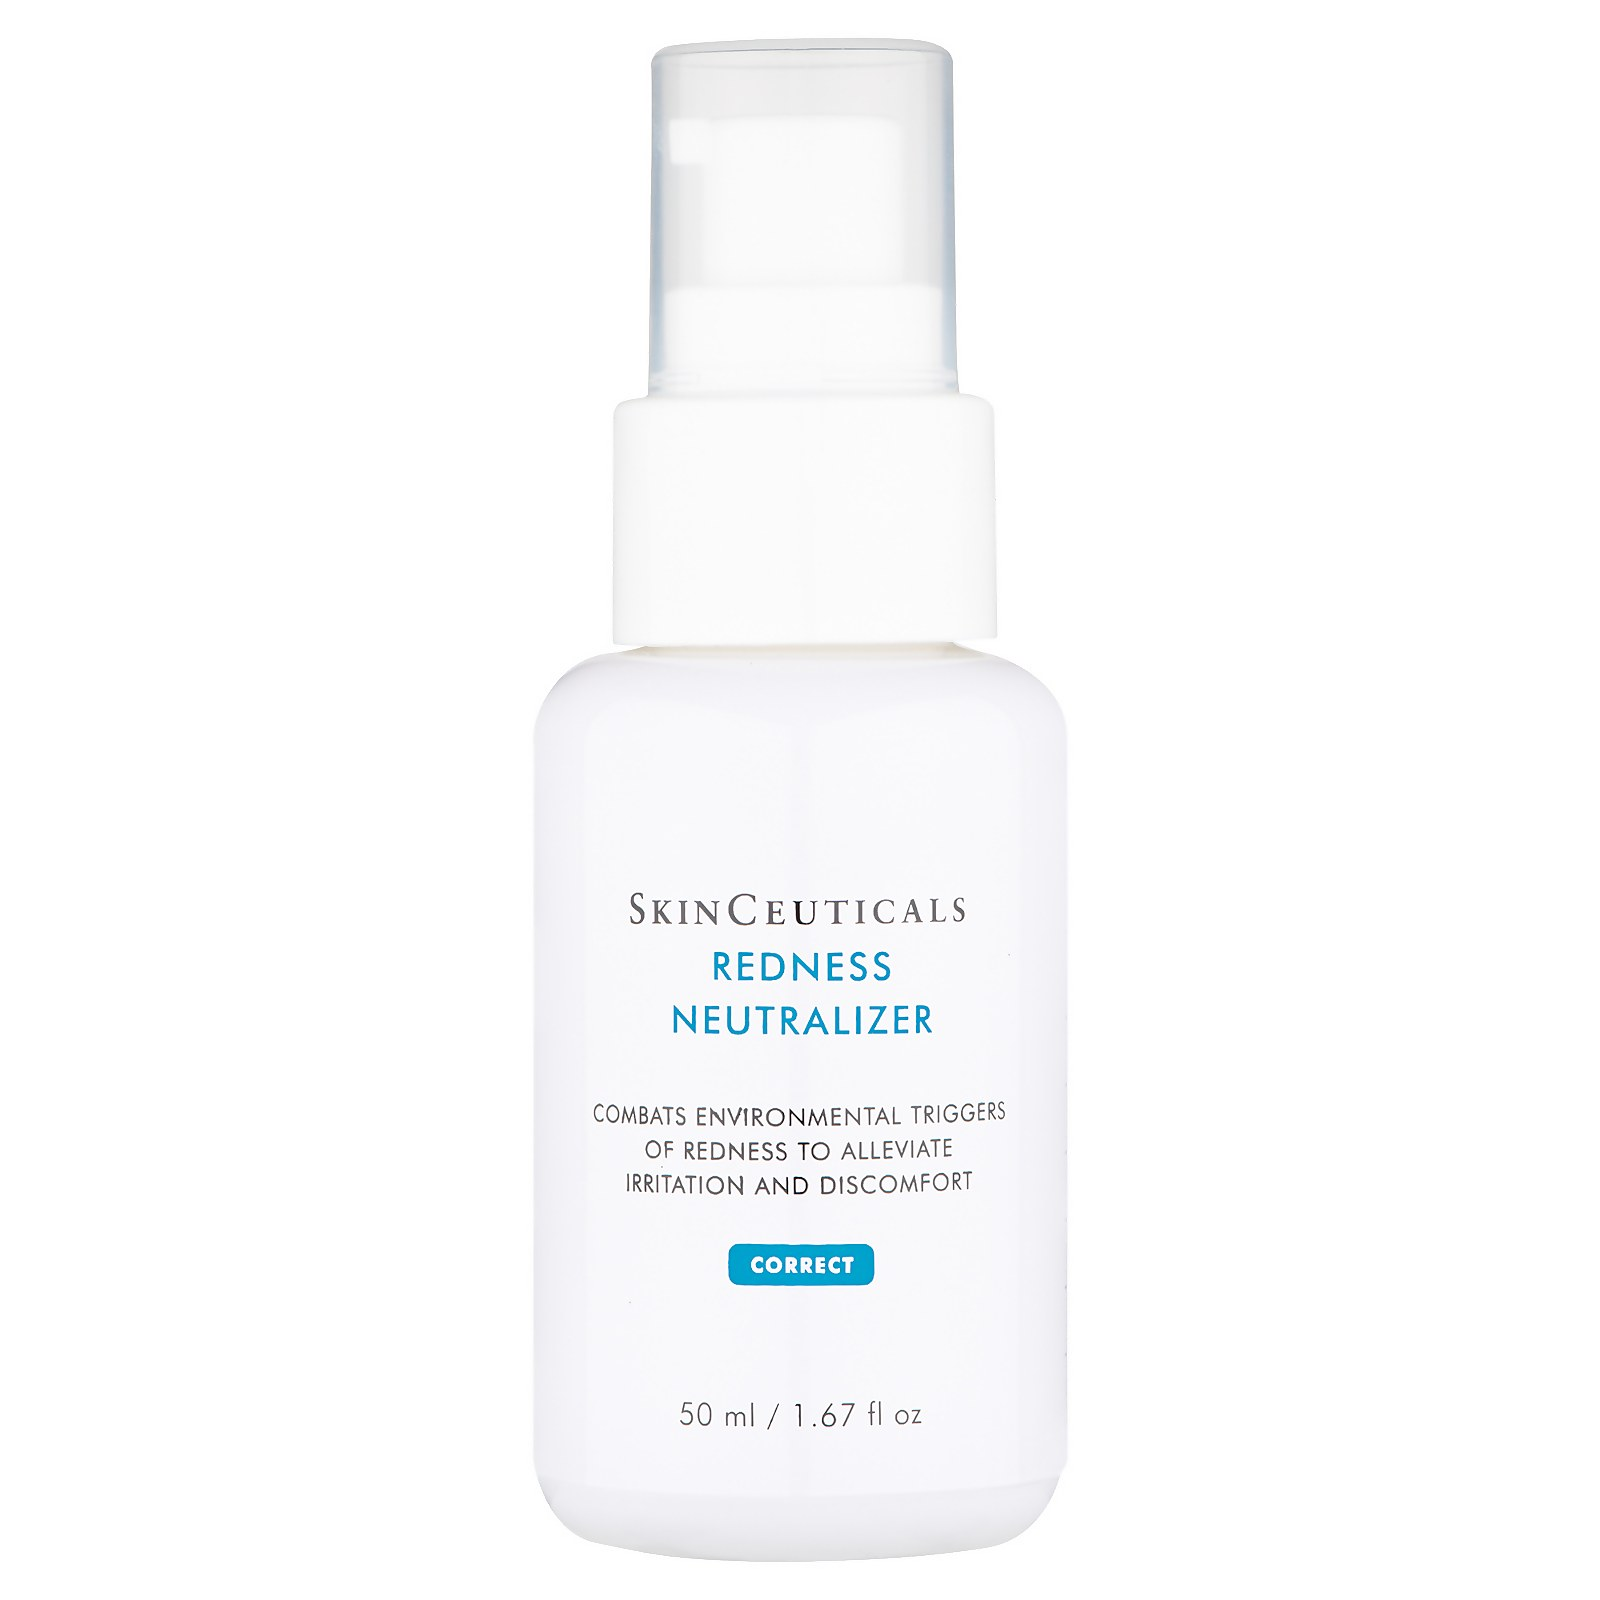 Skin Ceuticals – Redness Neutralizer